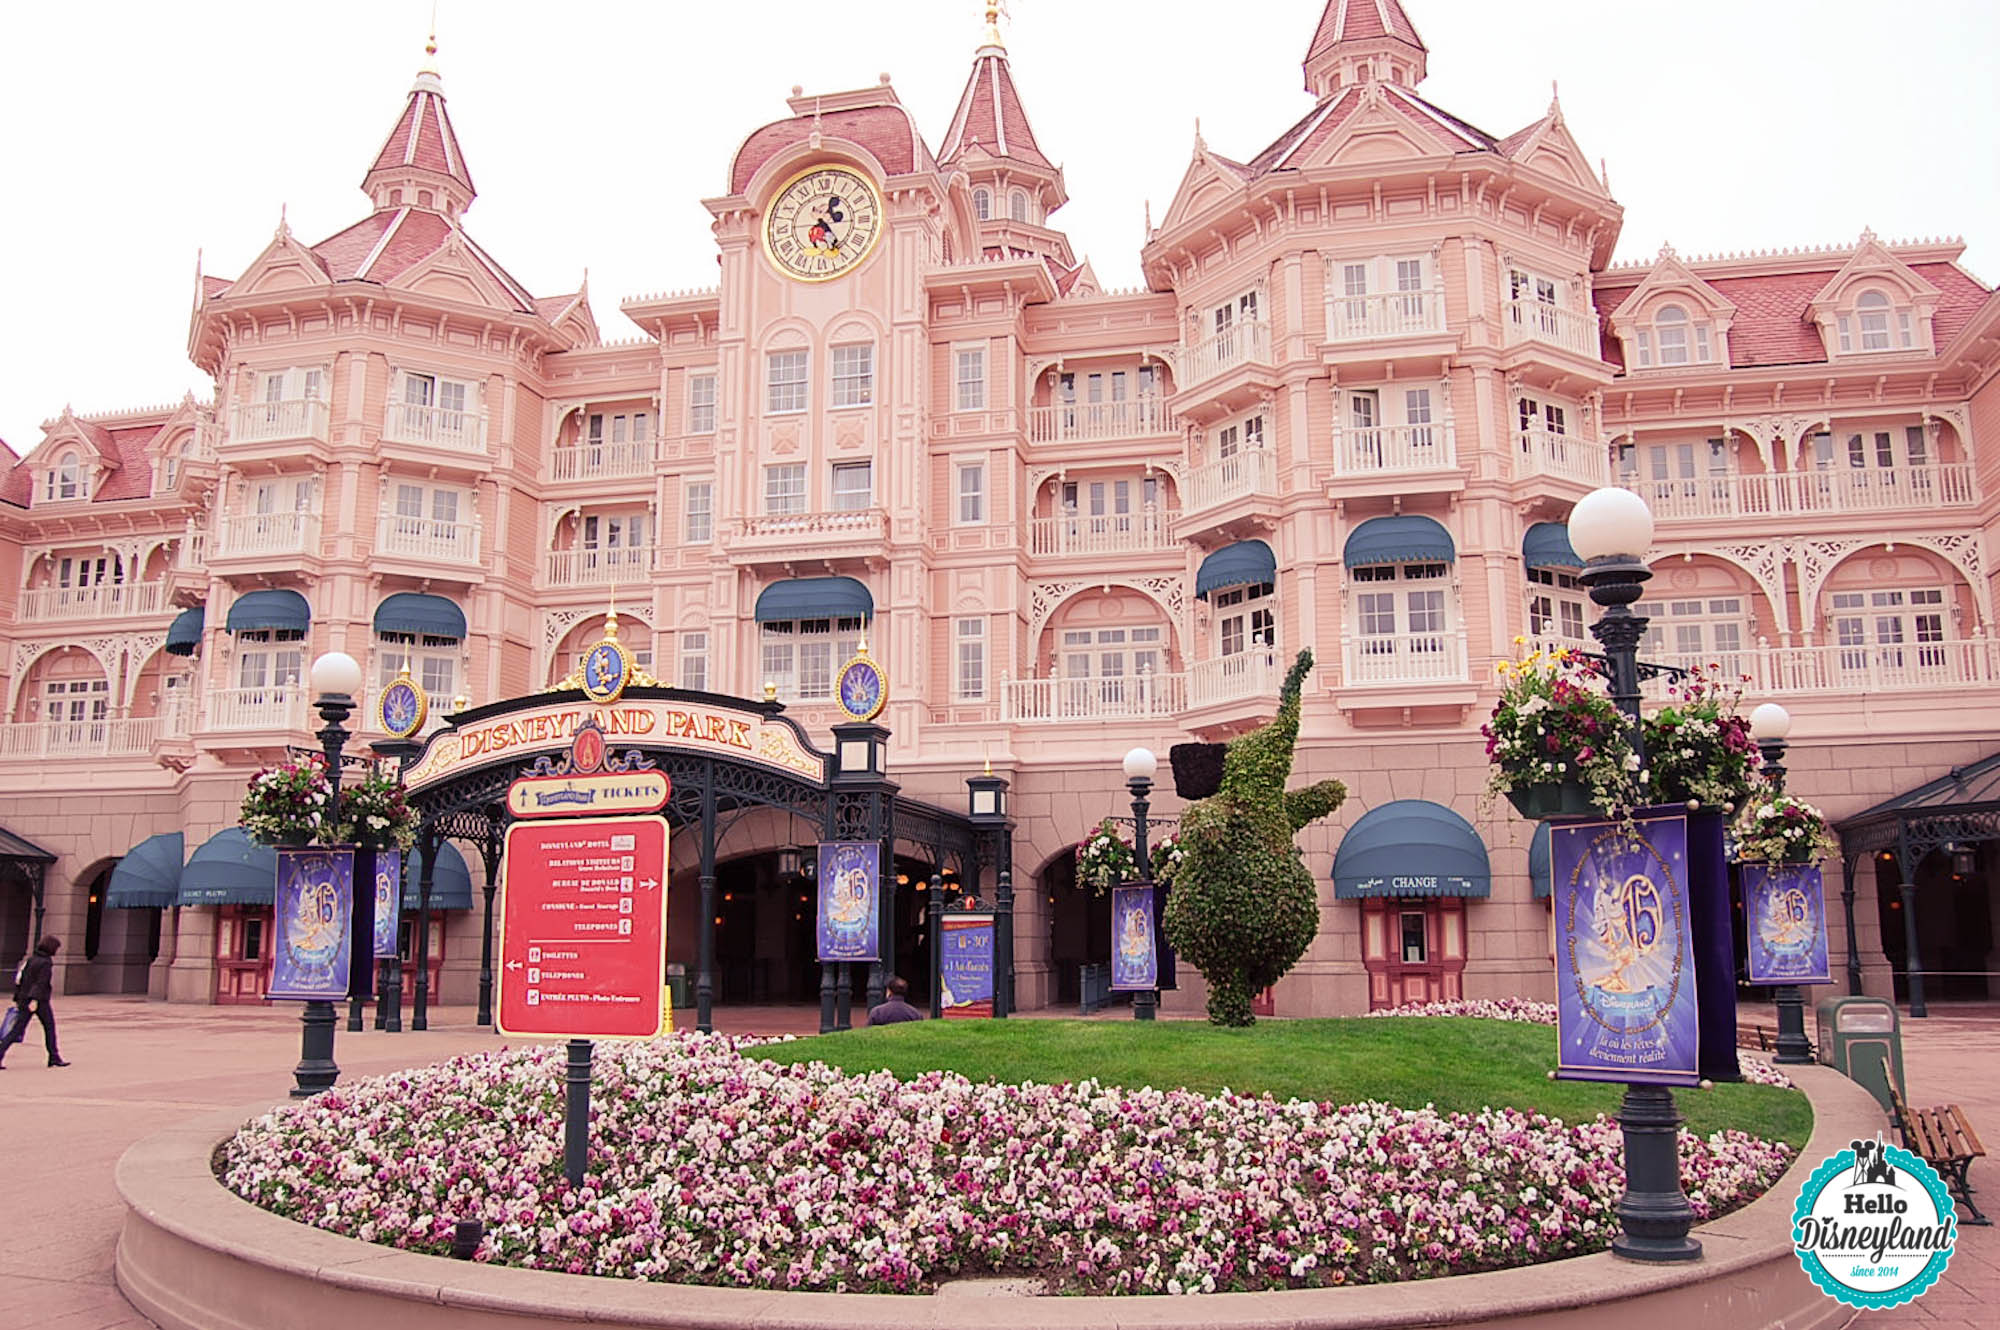 Hello disneyland le blog n 1 sur disneyland paris for Hotels eurodisney